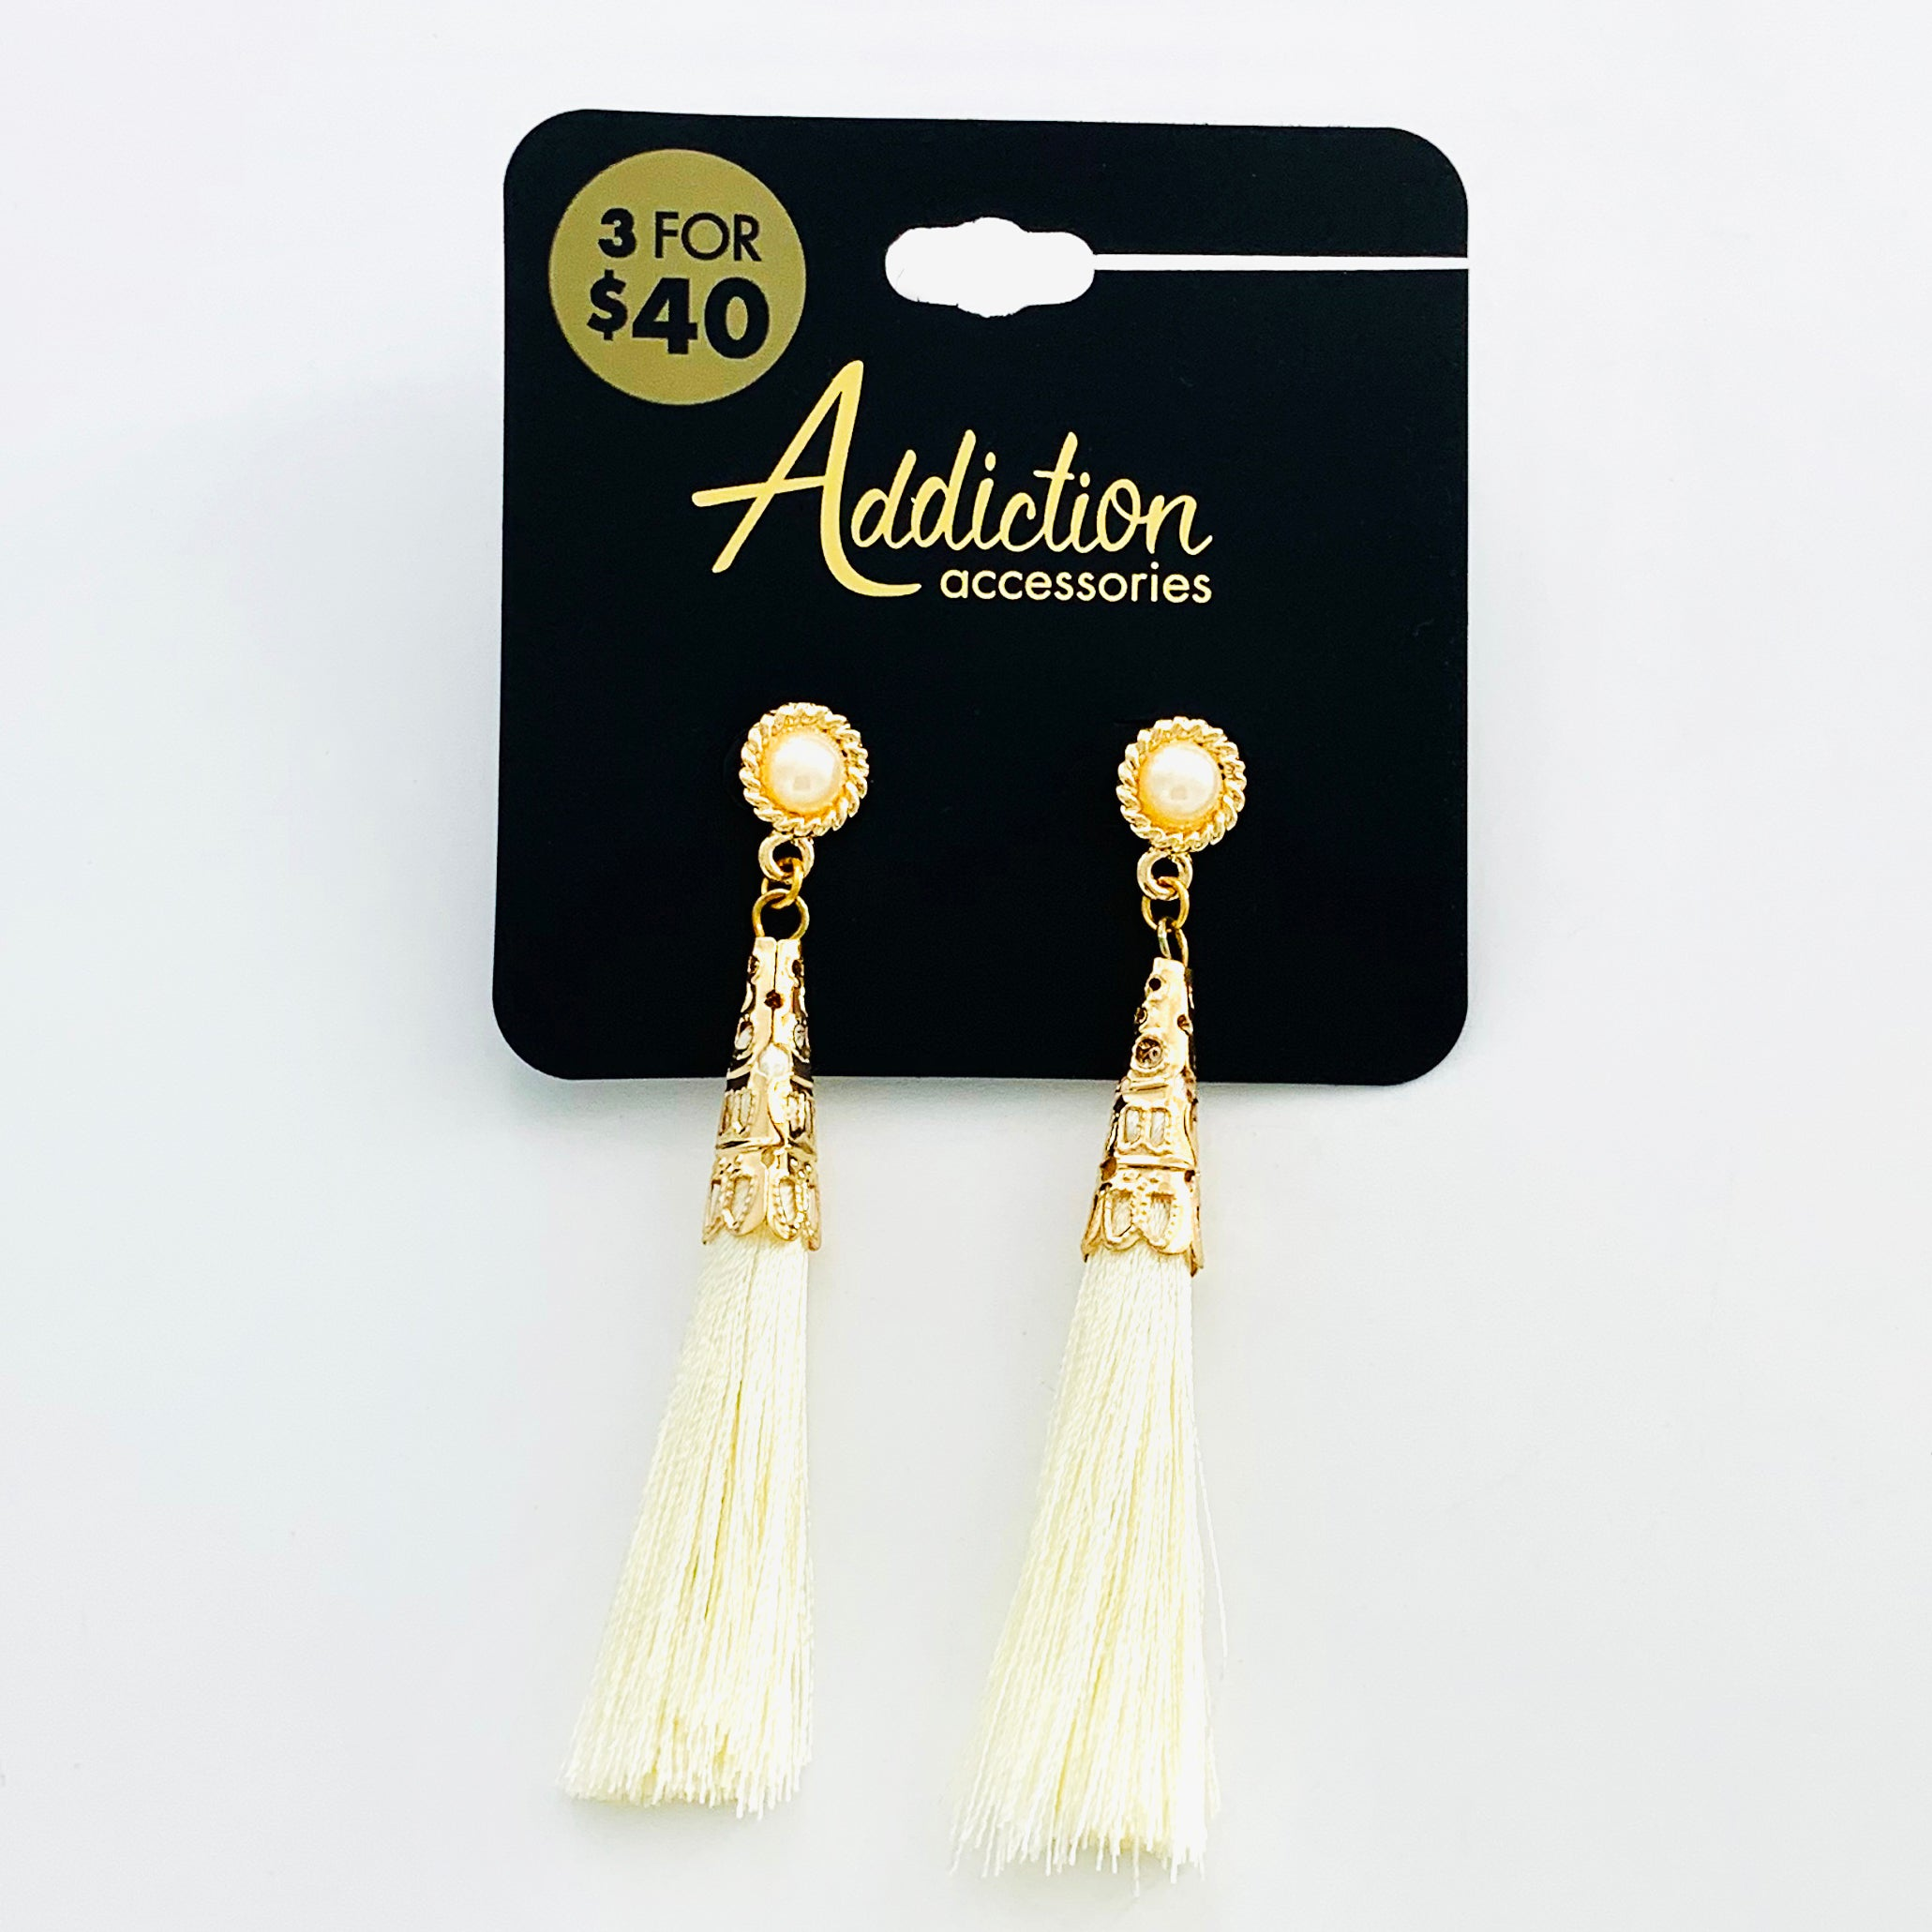 Gold earrings with white tassels